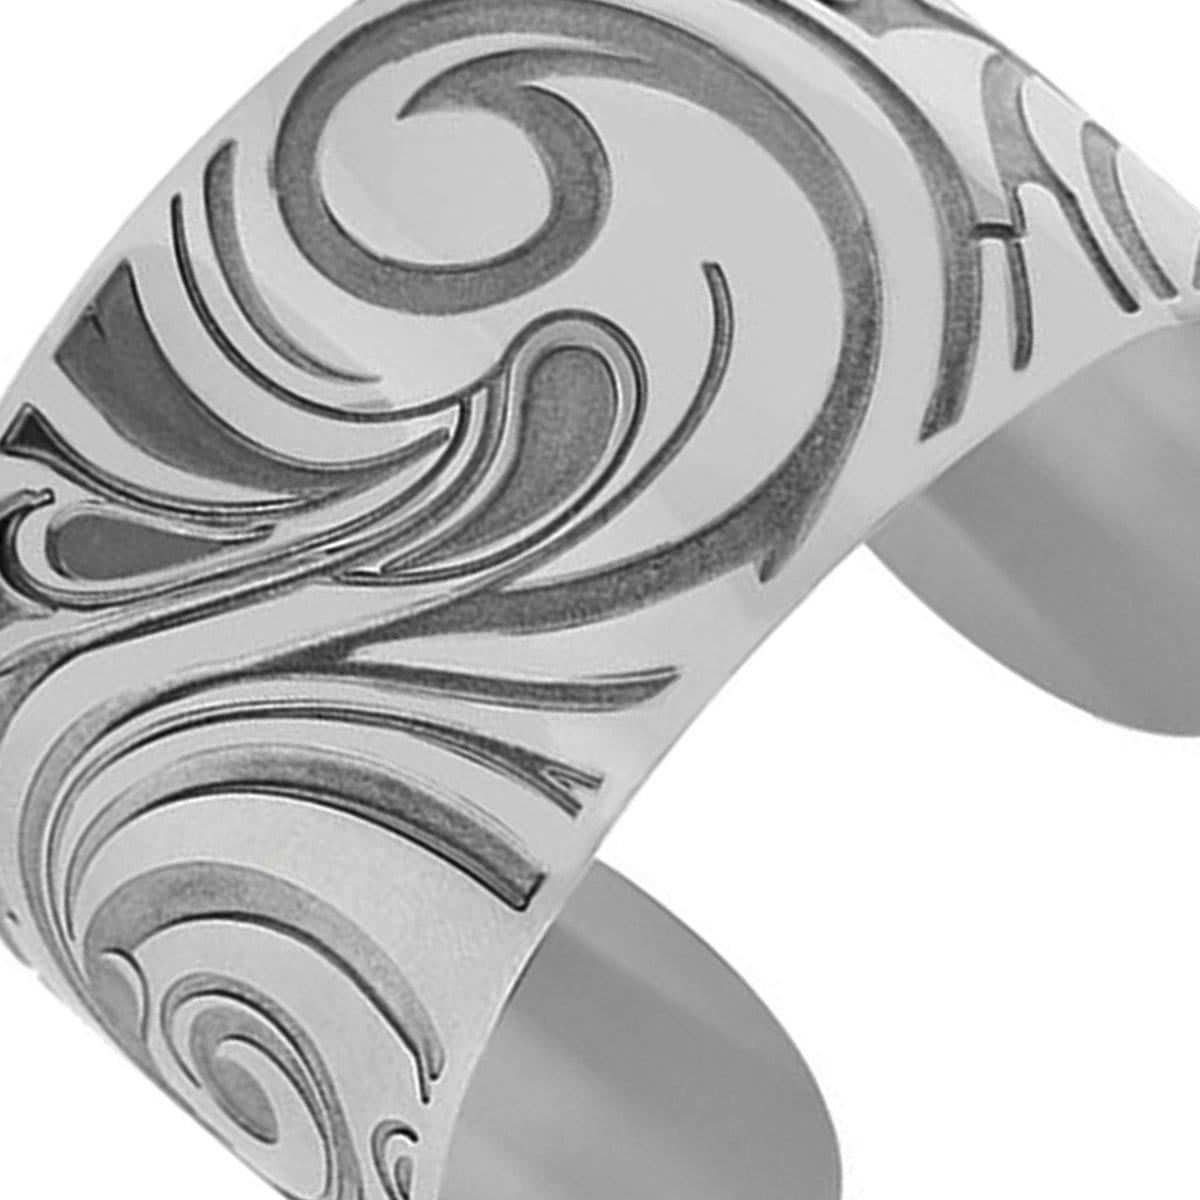 Silver Stainless Steel Etched Waves Cuff Bangle